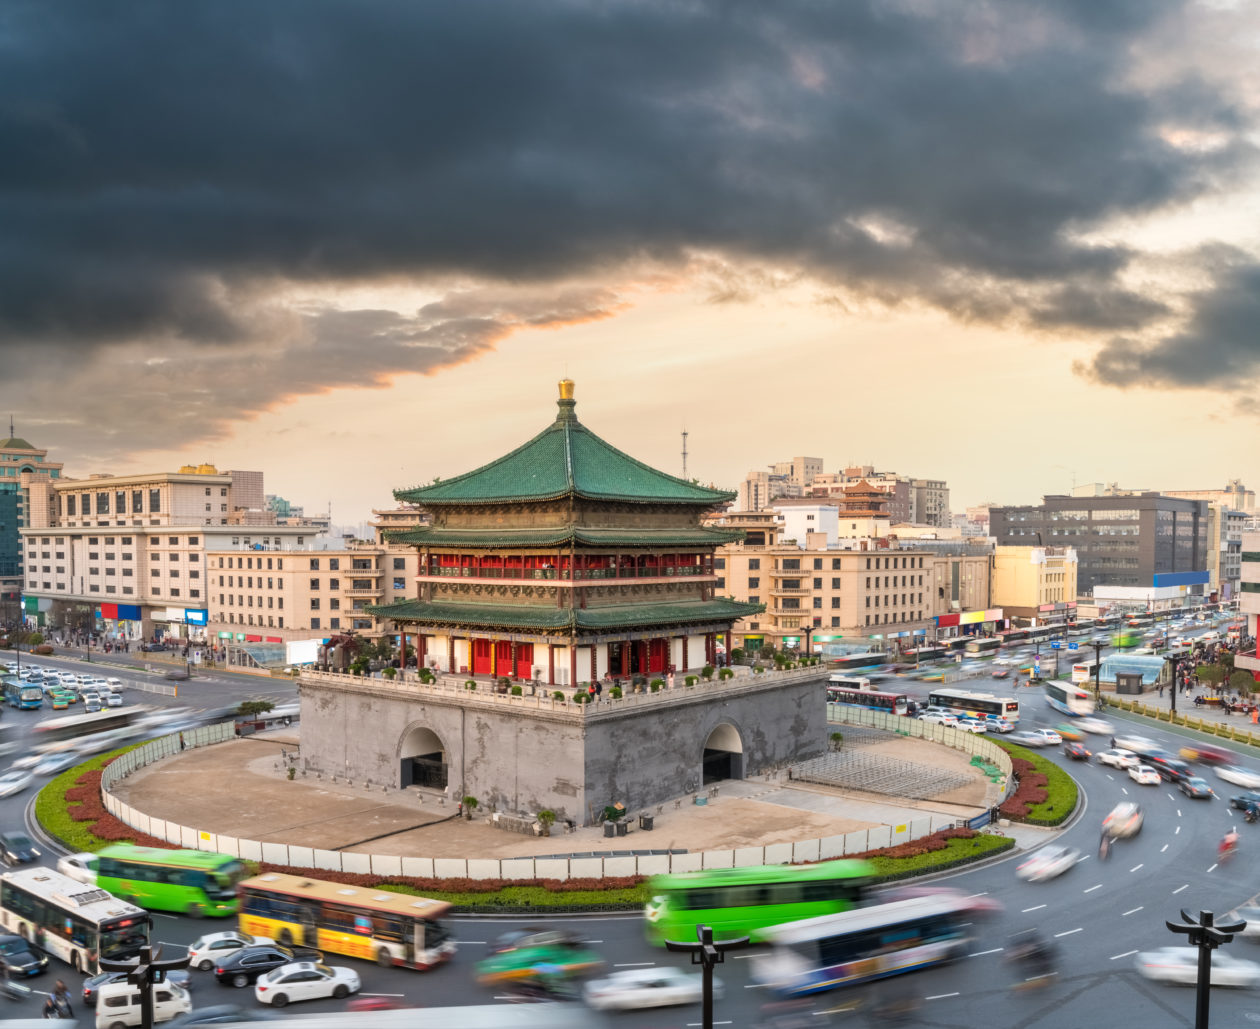 The capital city of Shaanxi, Xi'an, it's iconic bell tower at dusk. Now Shaanxi Province accepts e-CNY as toll fee, and plan to popularize it to the whole province